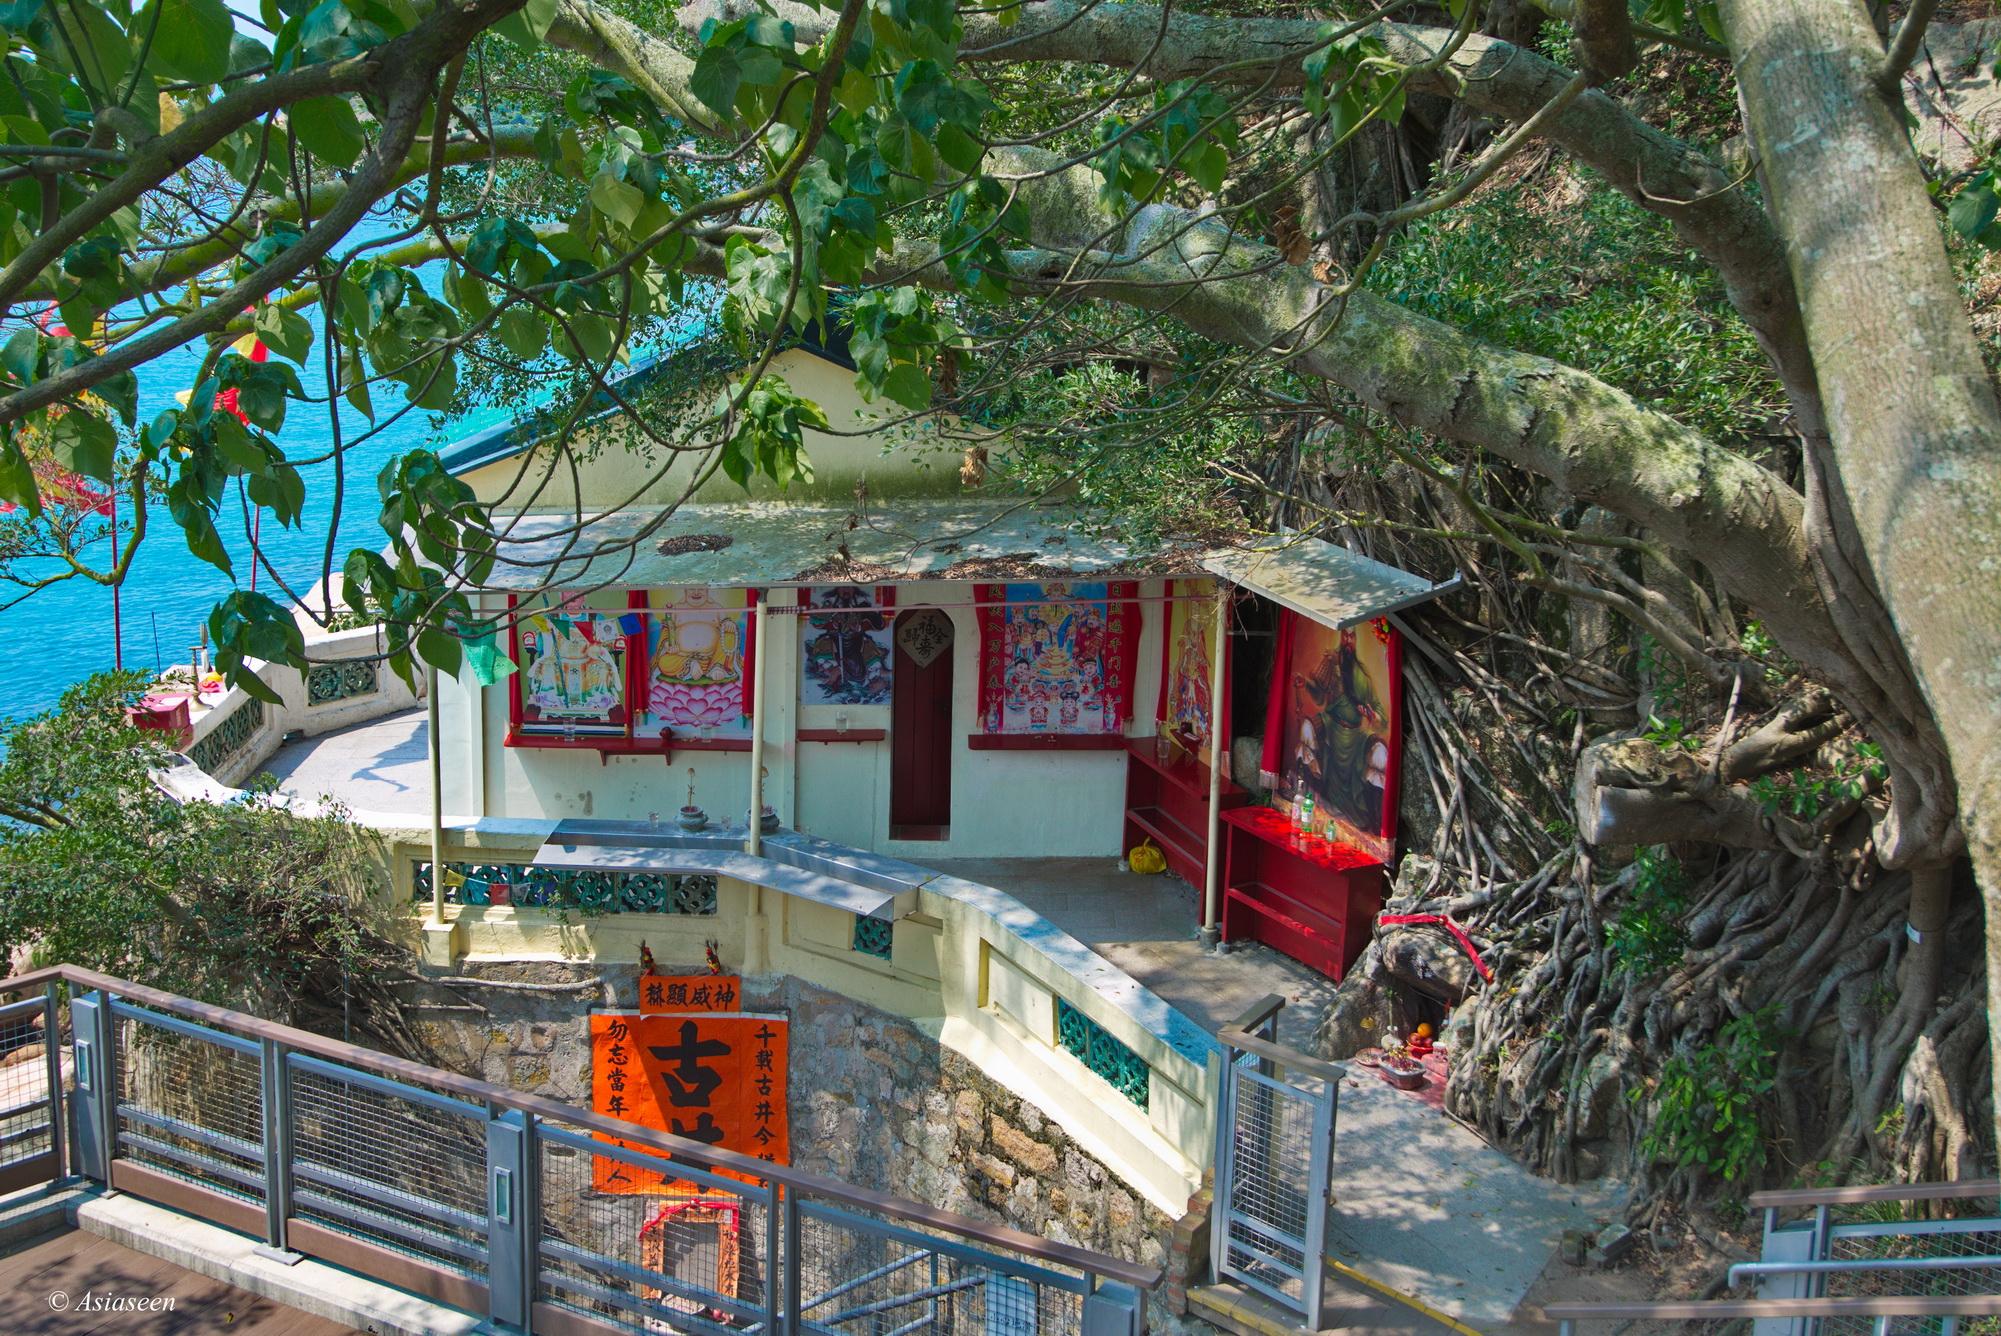 pak_tai_temple__stanley__hong_kong_by_asiaseen-d8rfh9s